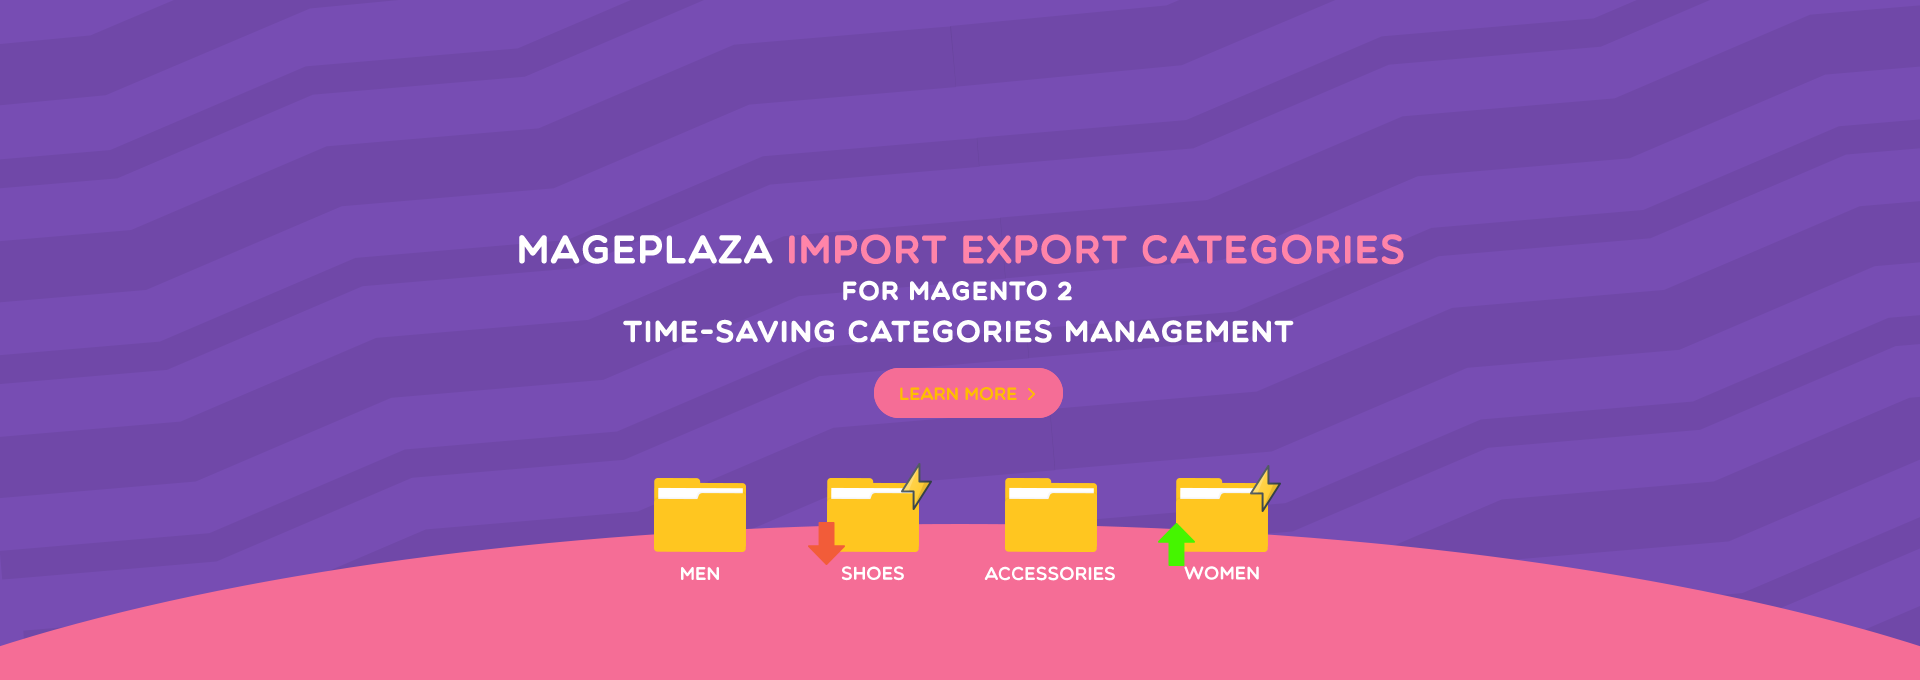 magento 2 import export categories